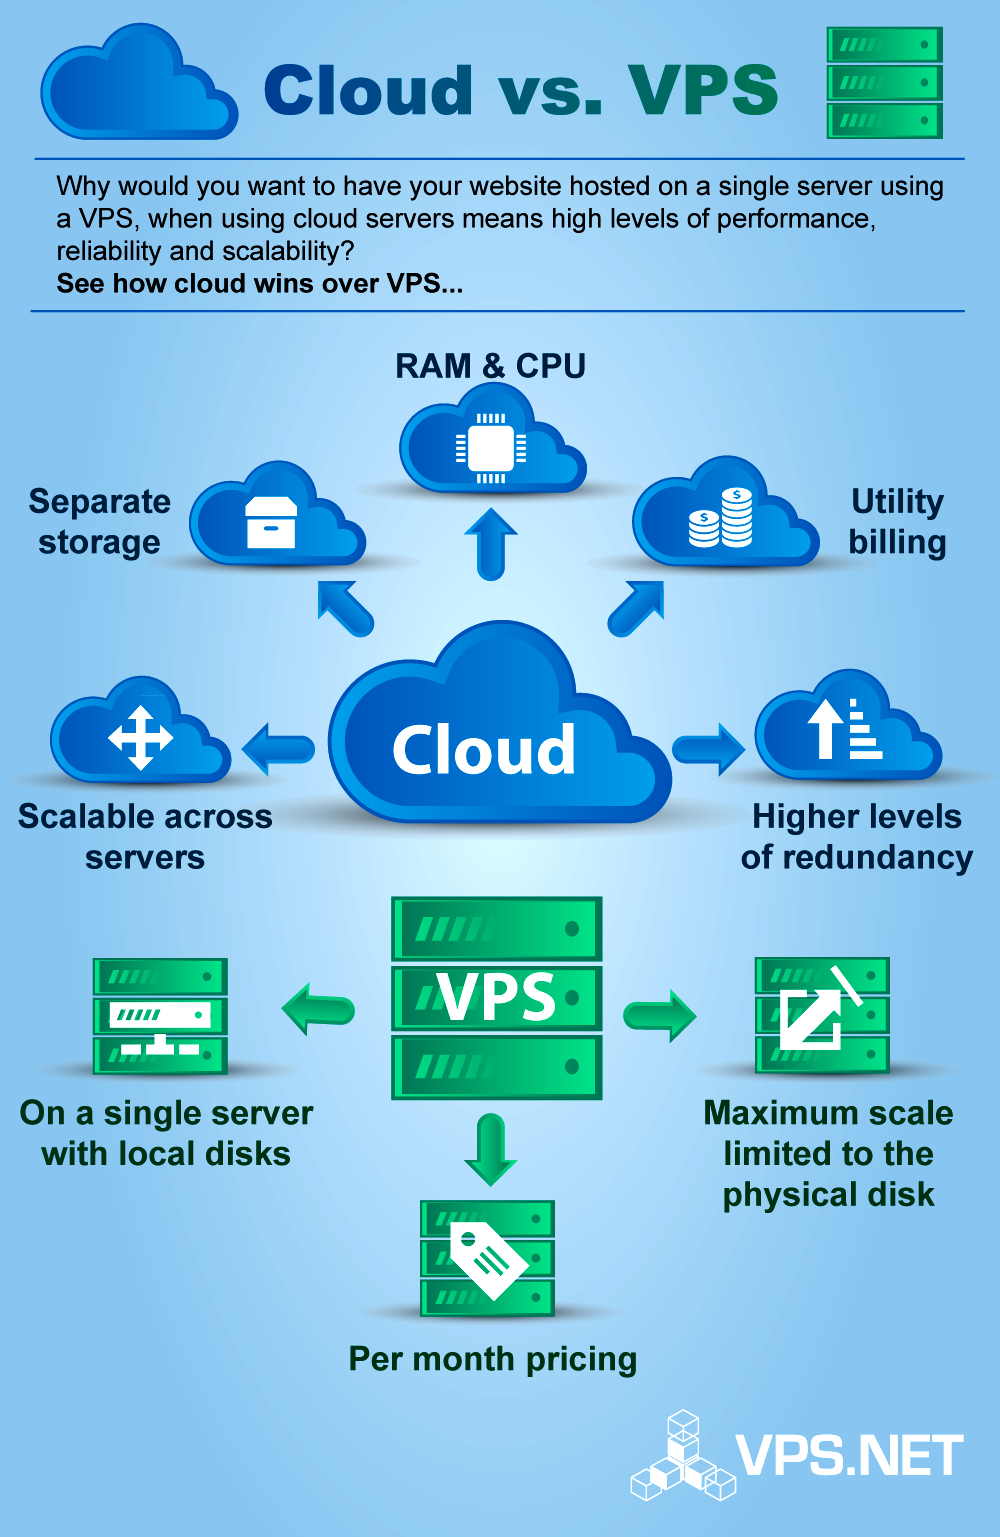 40++ Cloud hosting vs vps which is better info